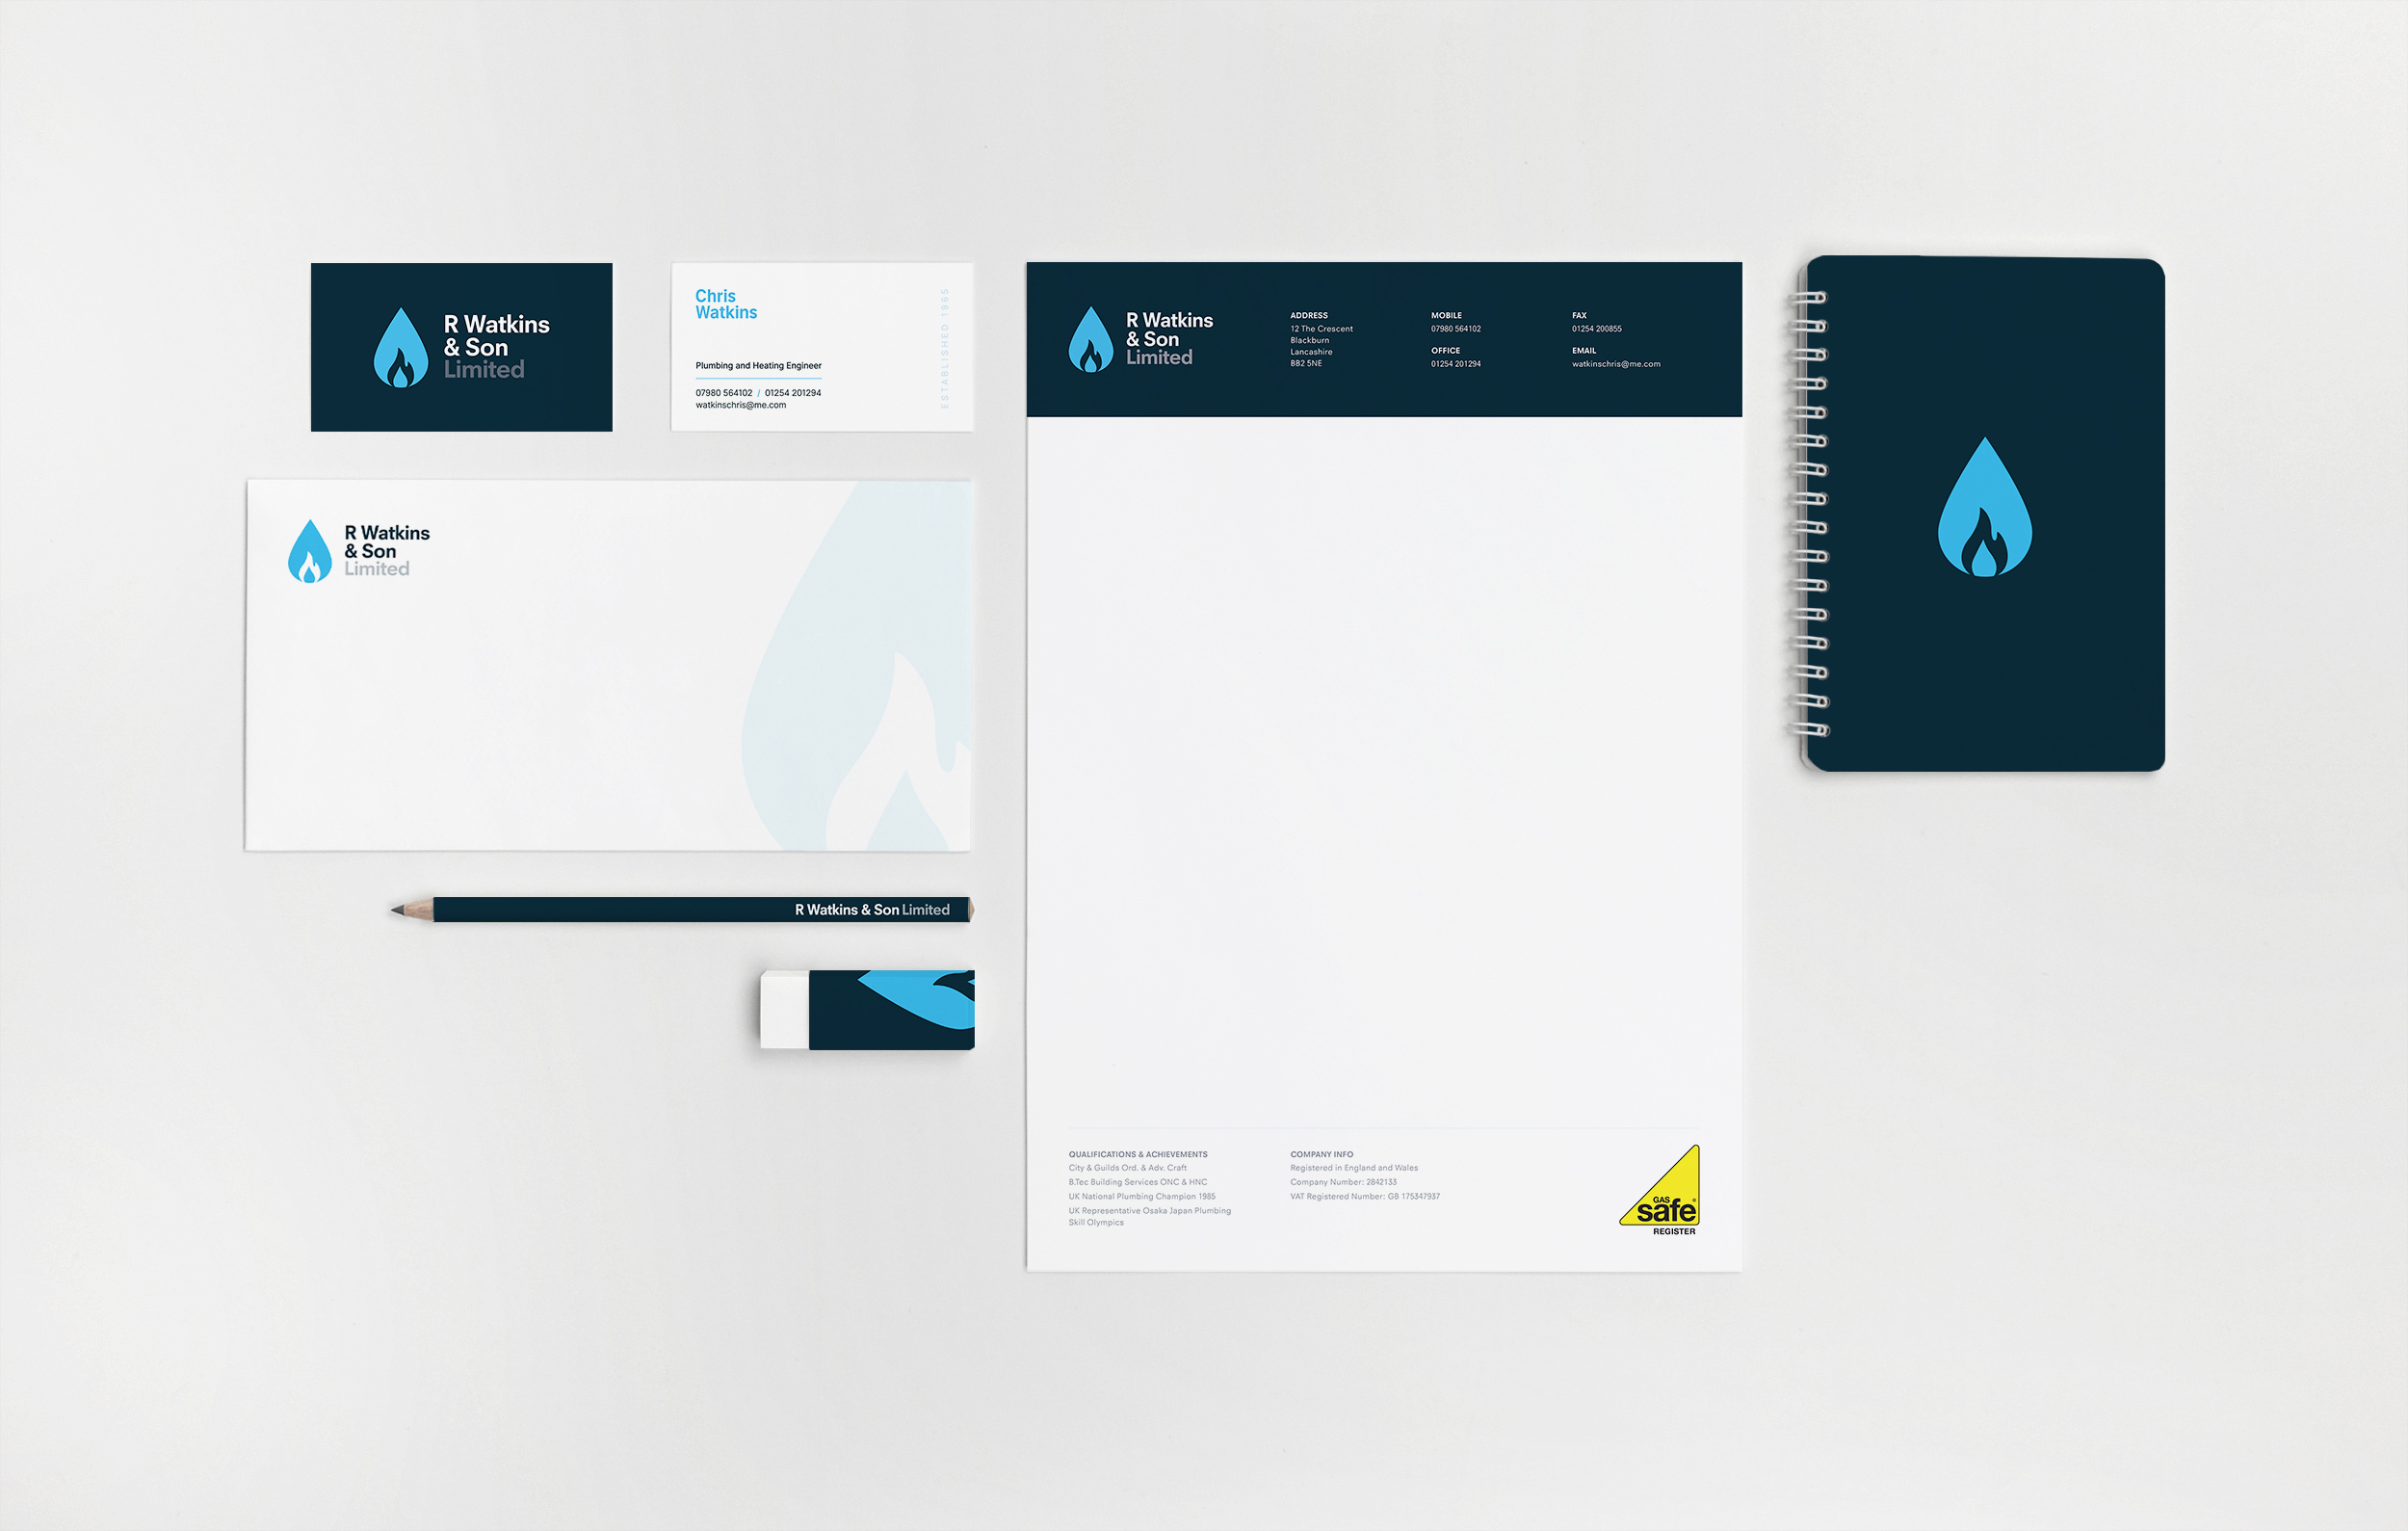 Branding and identity design for established plumbing and heating business, R Watkins & Son Limited